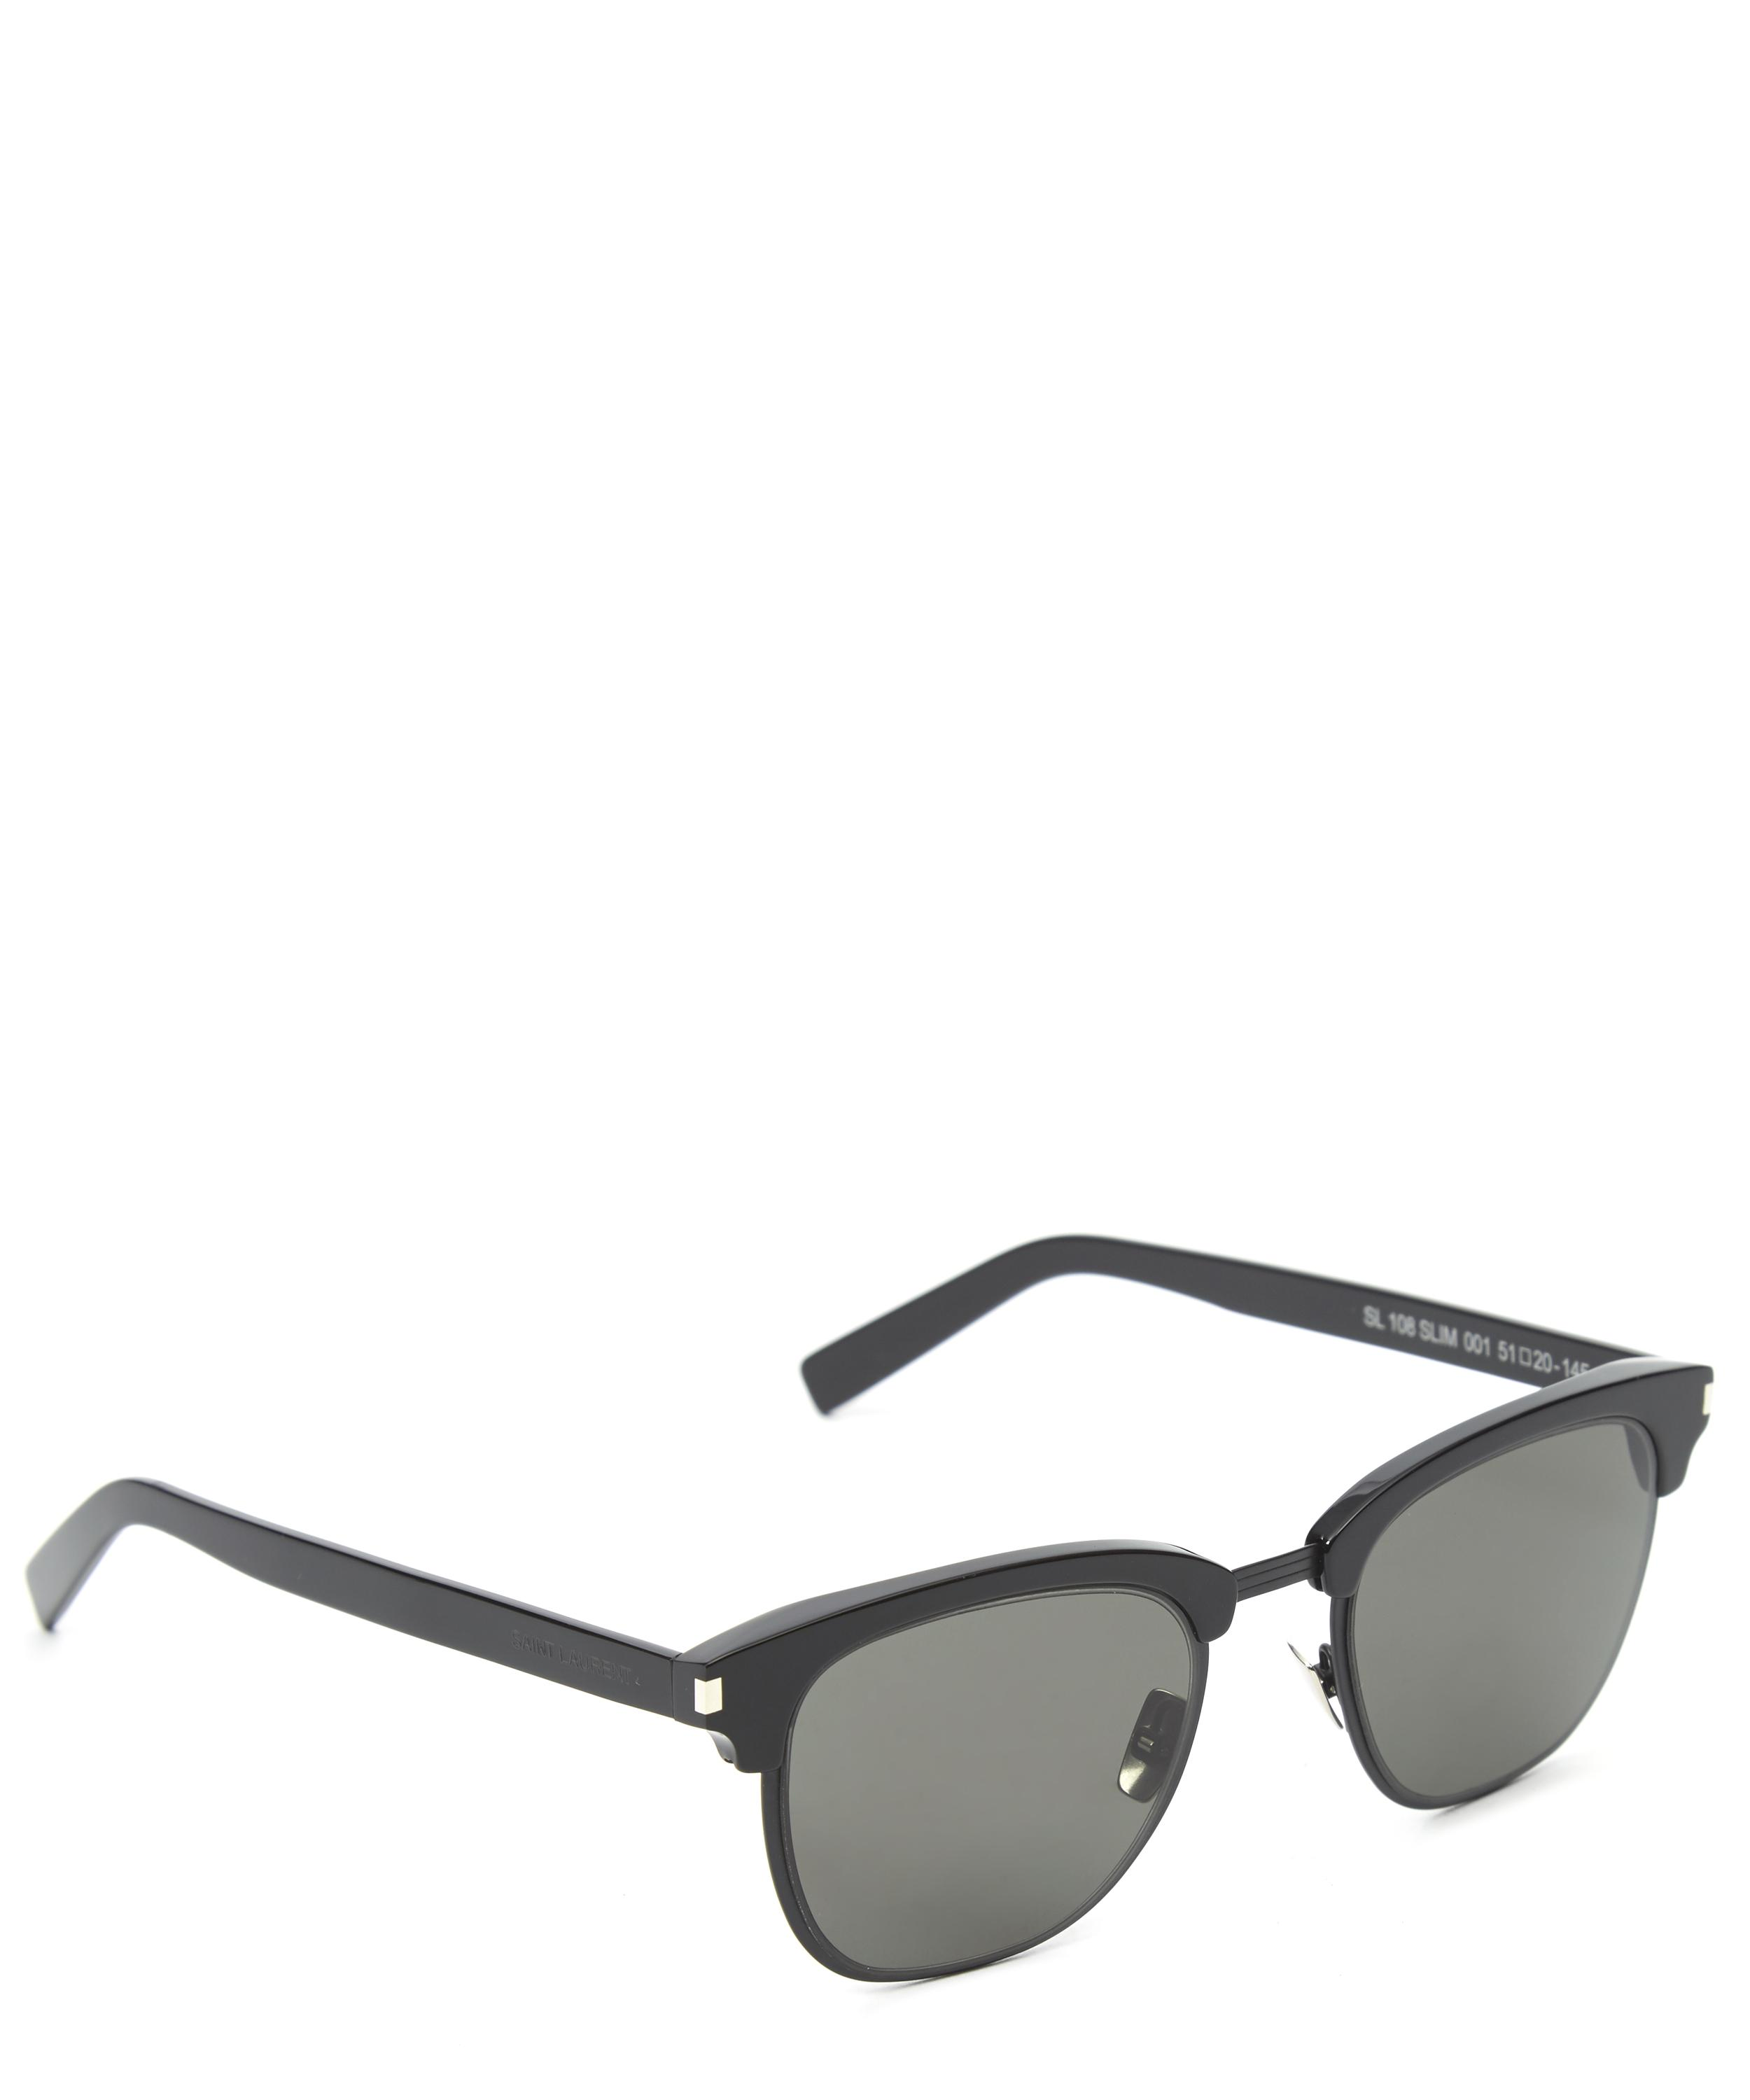 Wayfarer Glasses Half Frame : Slim Half-Frame Wayfarer Sunglasses Liberty London